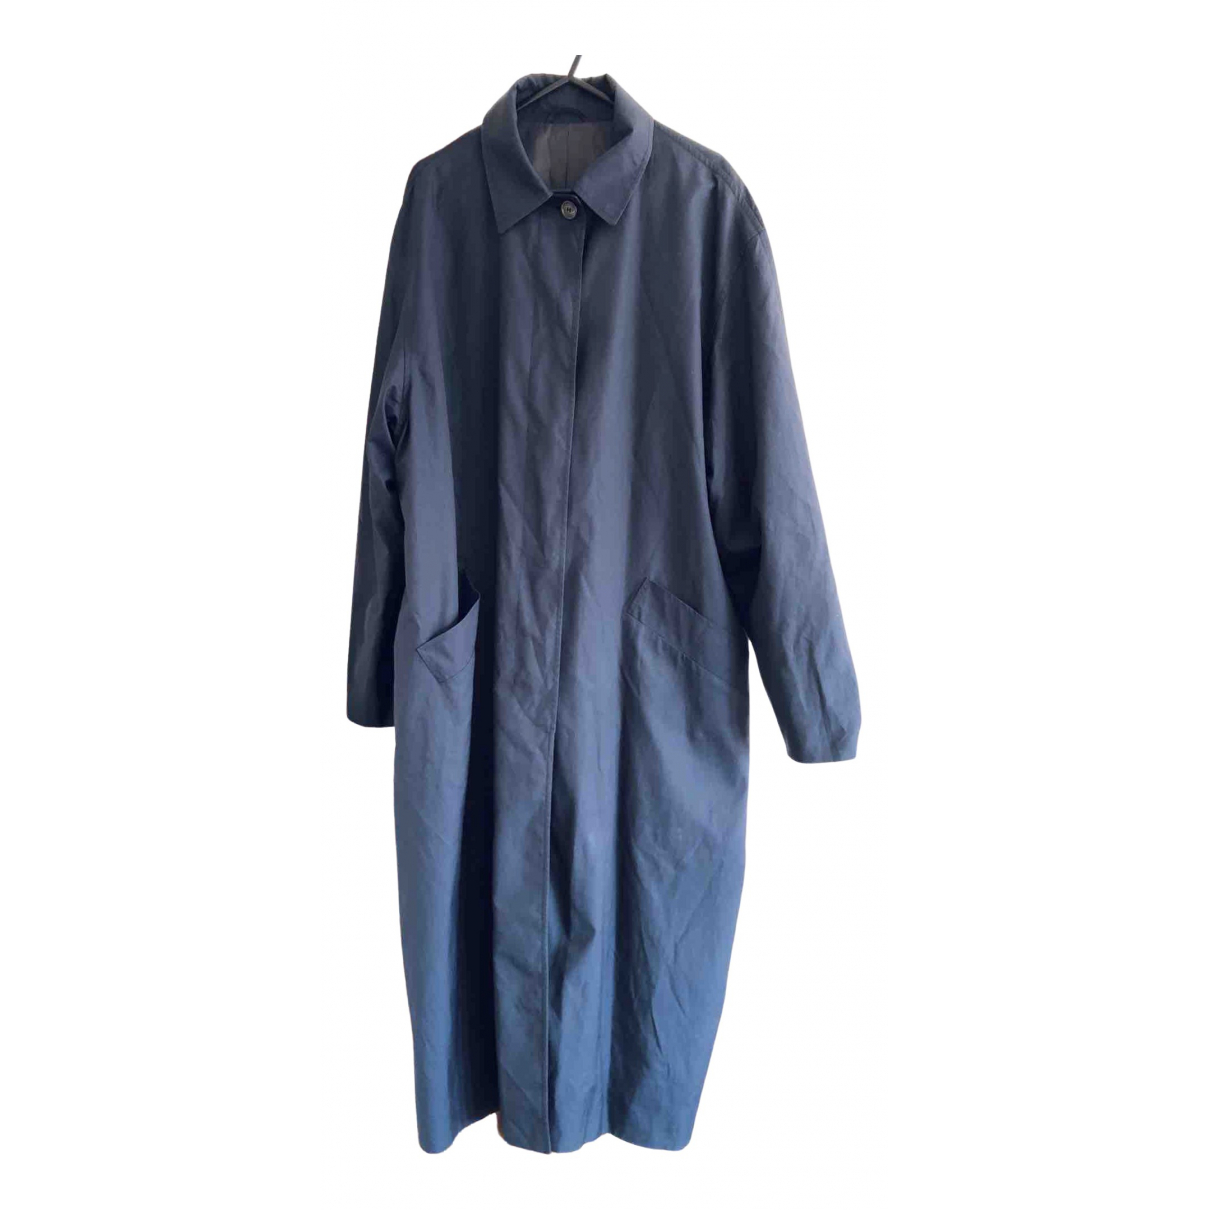 Paul Smith \N Blue coat for Women M International